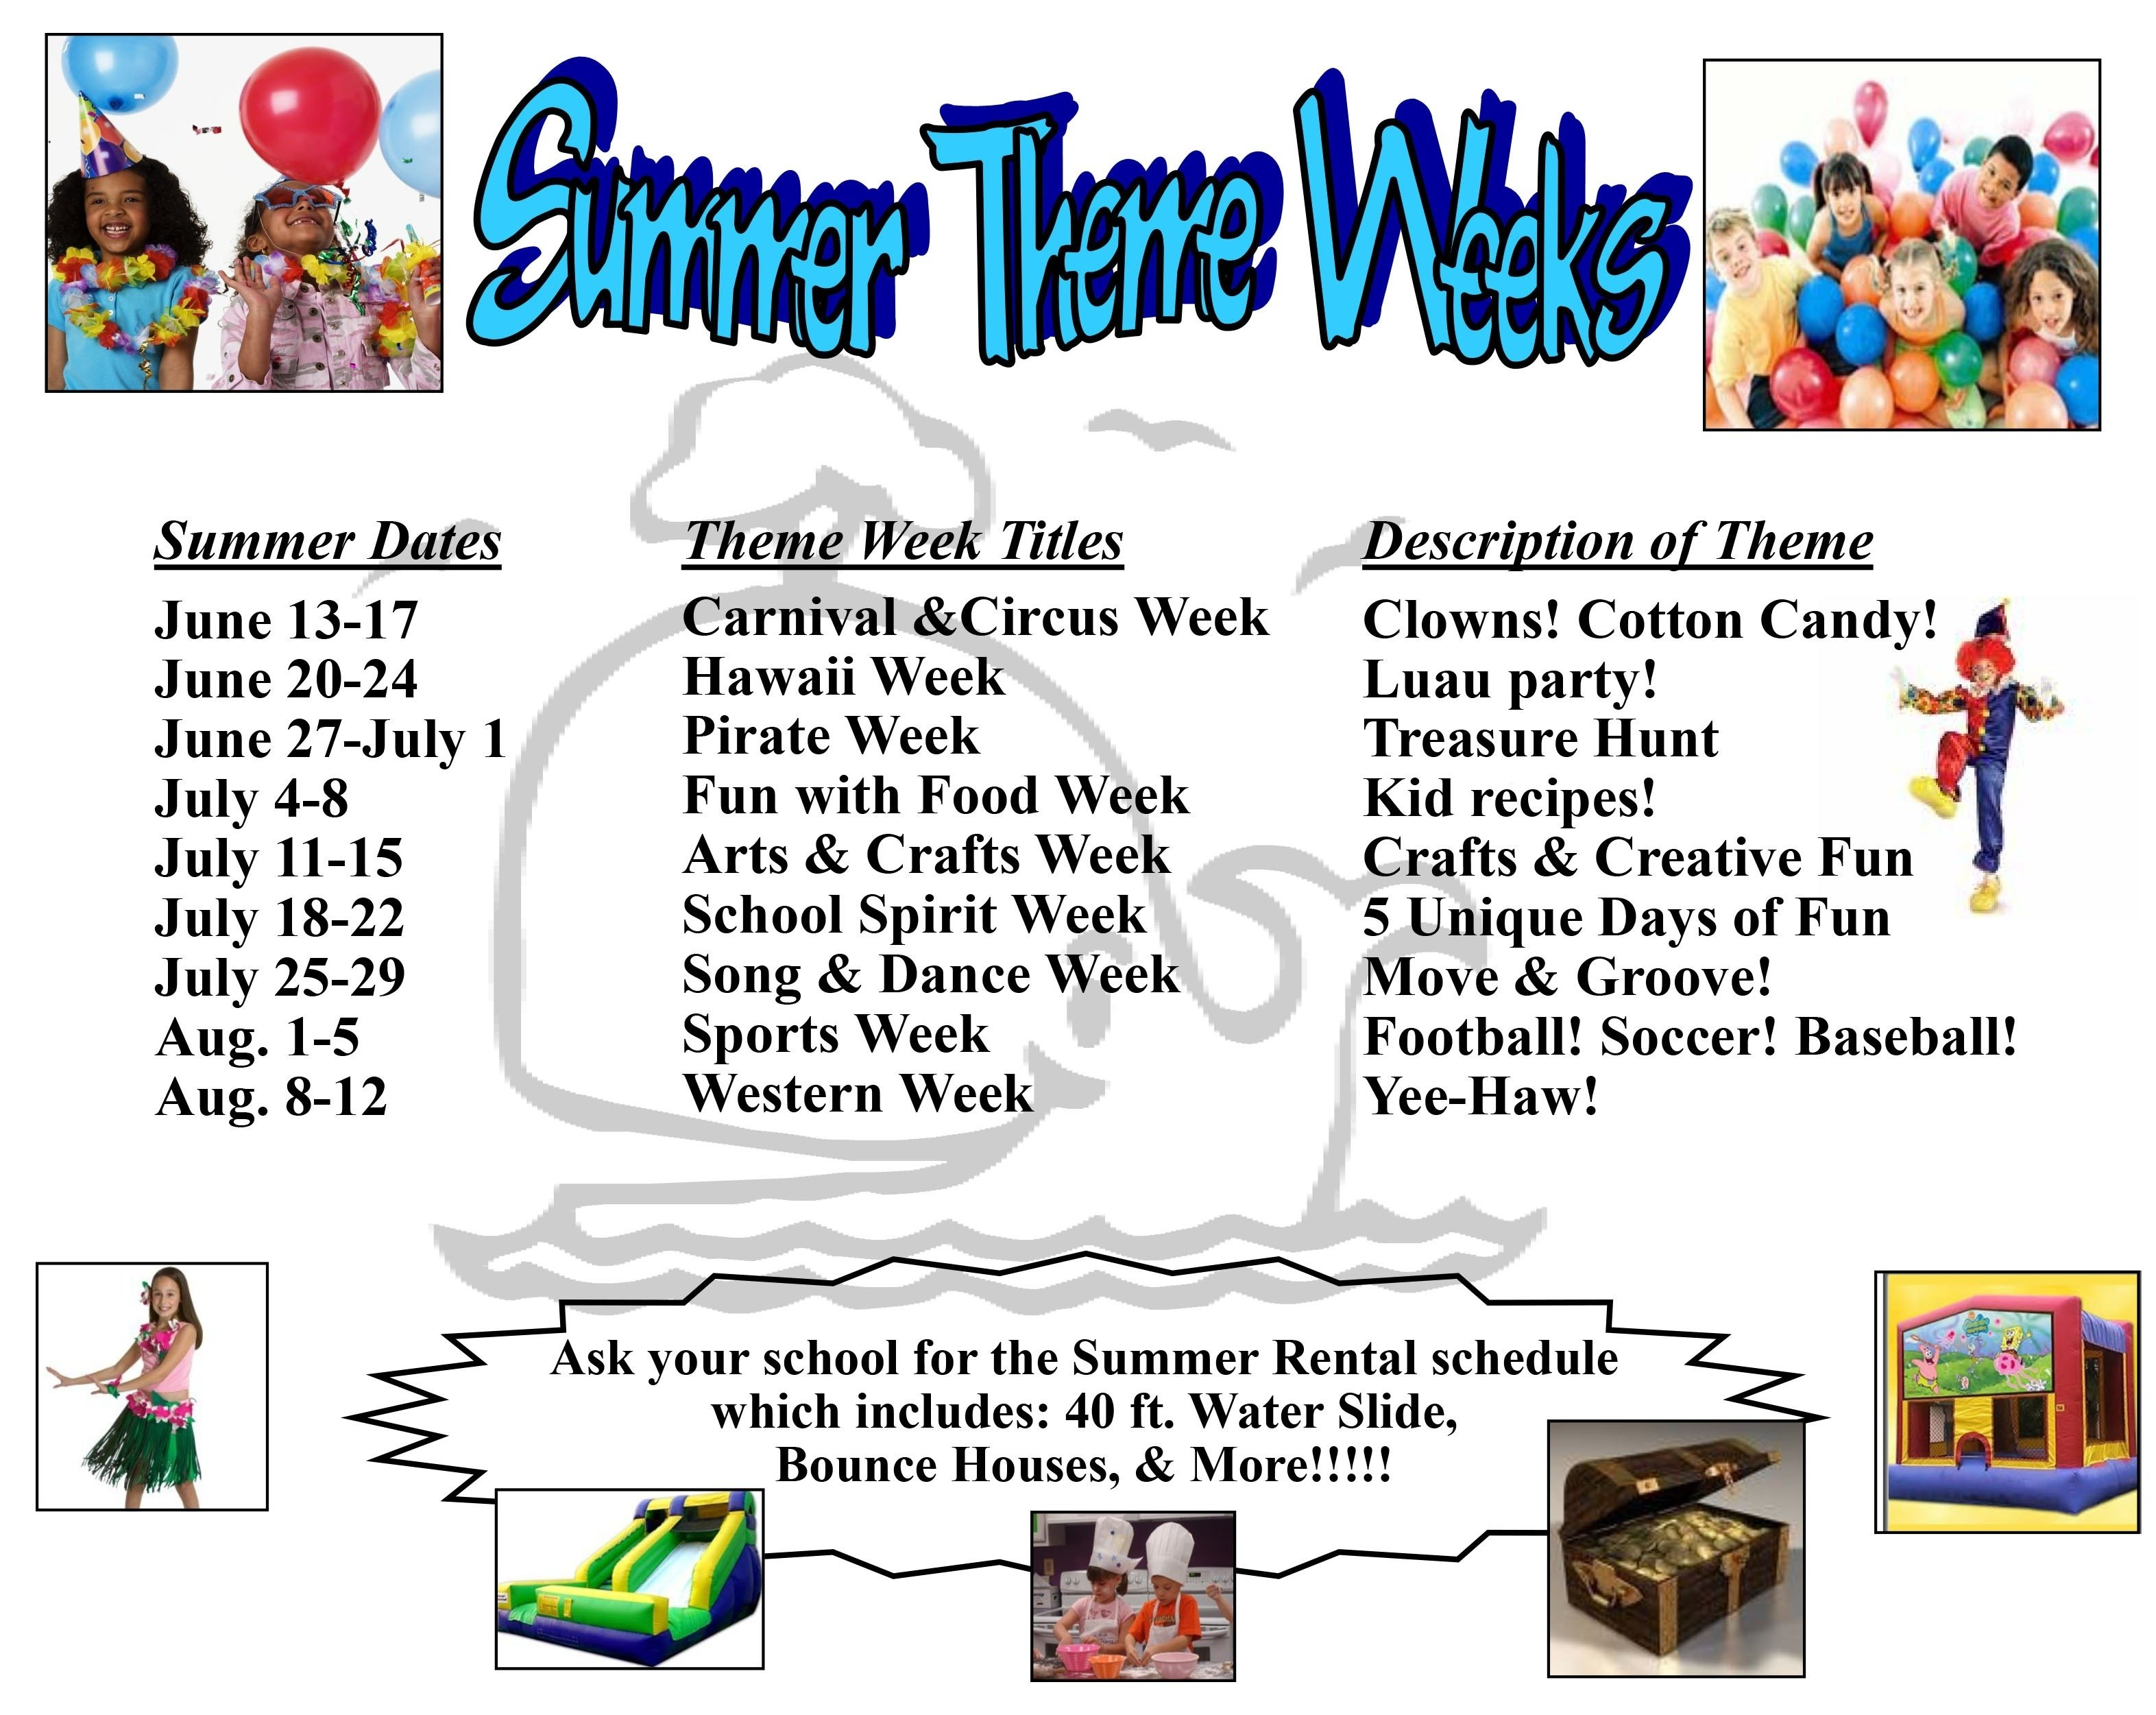 10 Best Summer Camp Weekly Theme Ideas summer 2016 theme week schedule official grace community school blog 1 2021